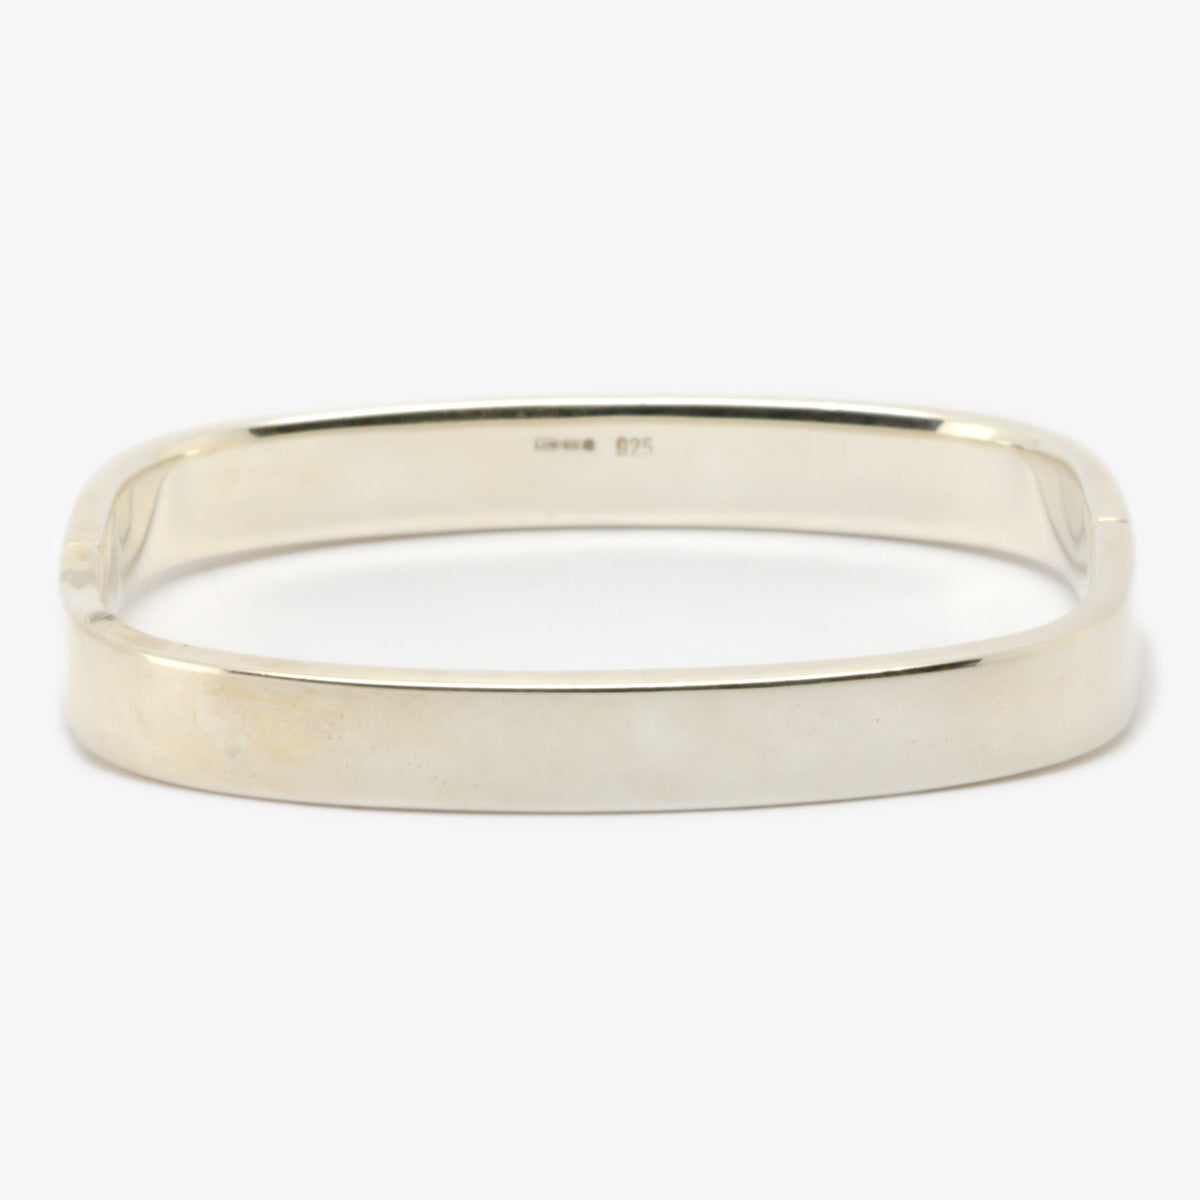 Picture of a bangle in silver shaped like a 'TV' and is hinged on the side making it easy to put on and take off front view.